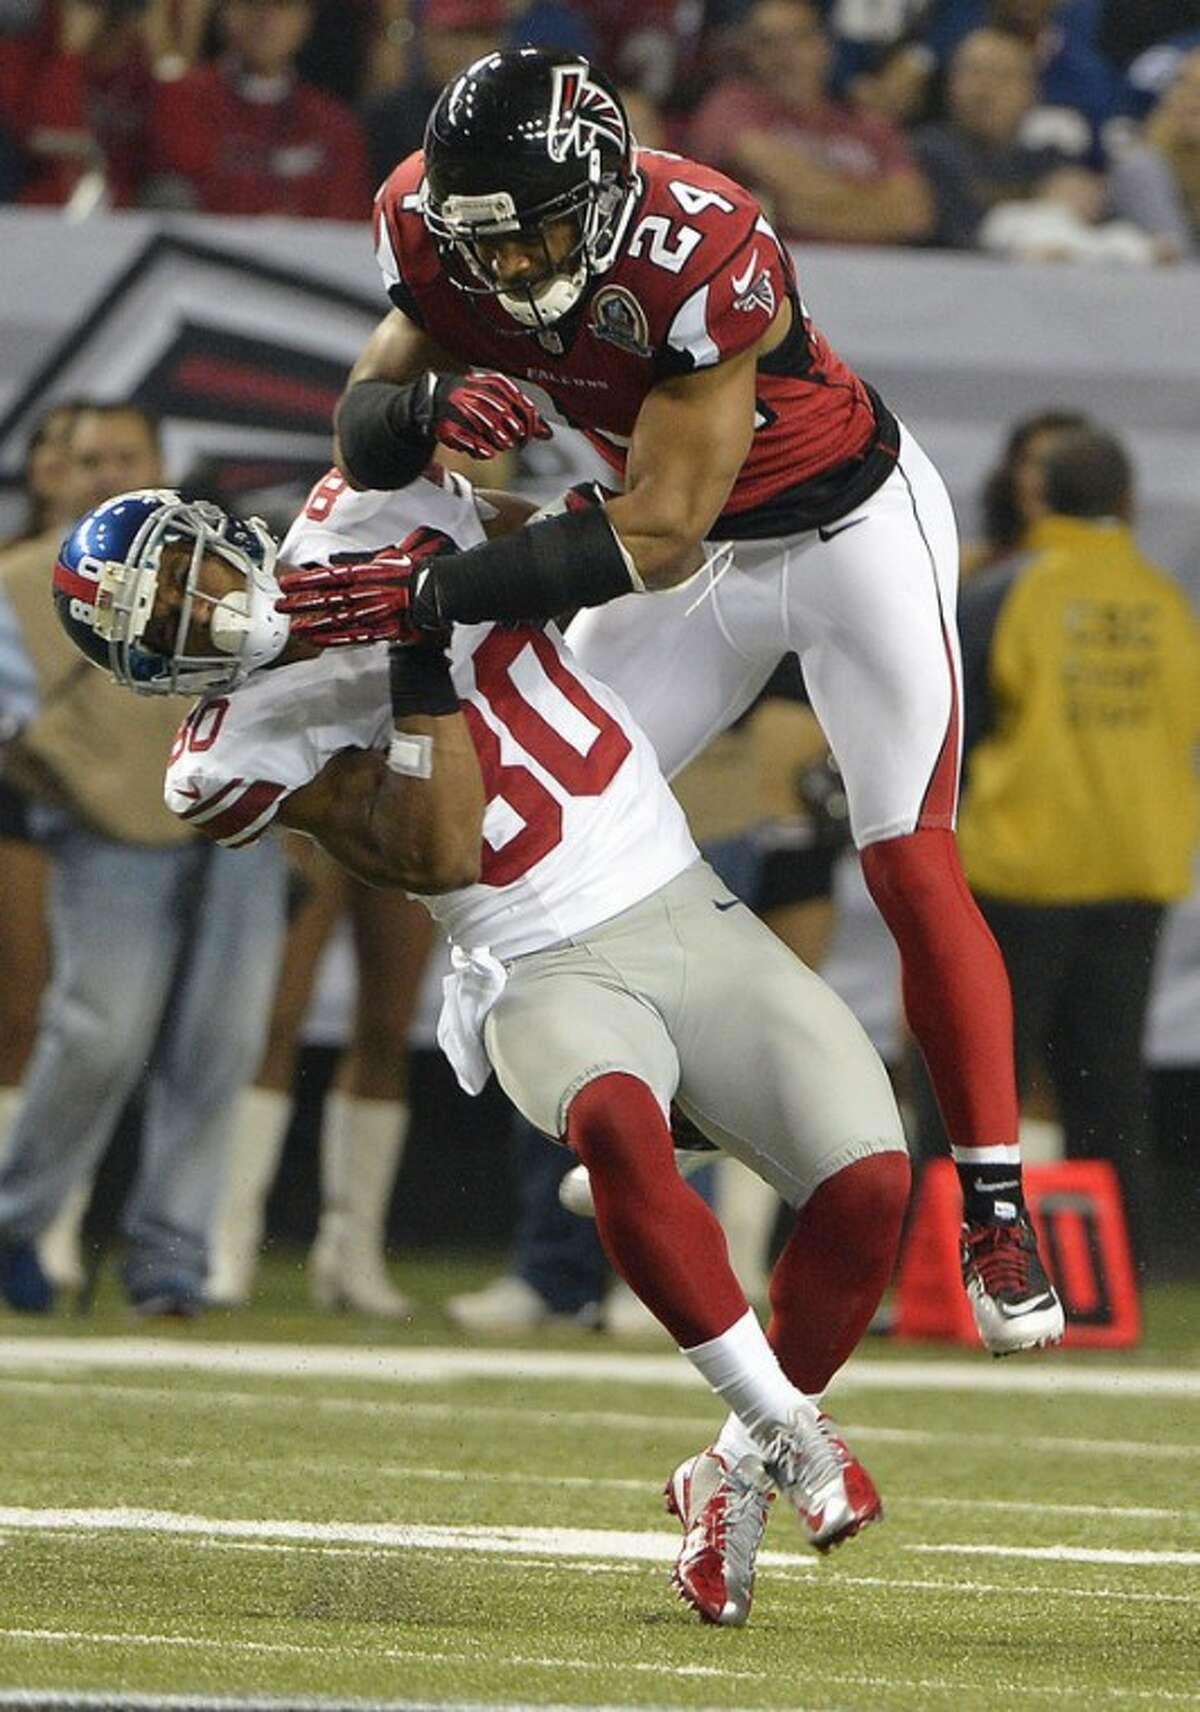 Atlanta Falcons strong safety Chris Hope (24) hits New York Giants wide receiver Victor Cruz (80) during the second half of an NFL football game on Sunday, Dec. 16, 2012, in Atlanta. (AP Photo/Rich Addicks)